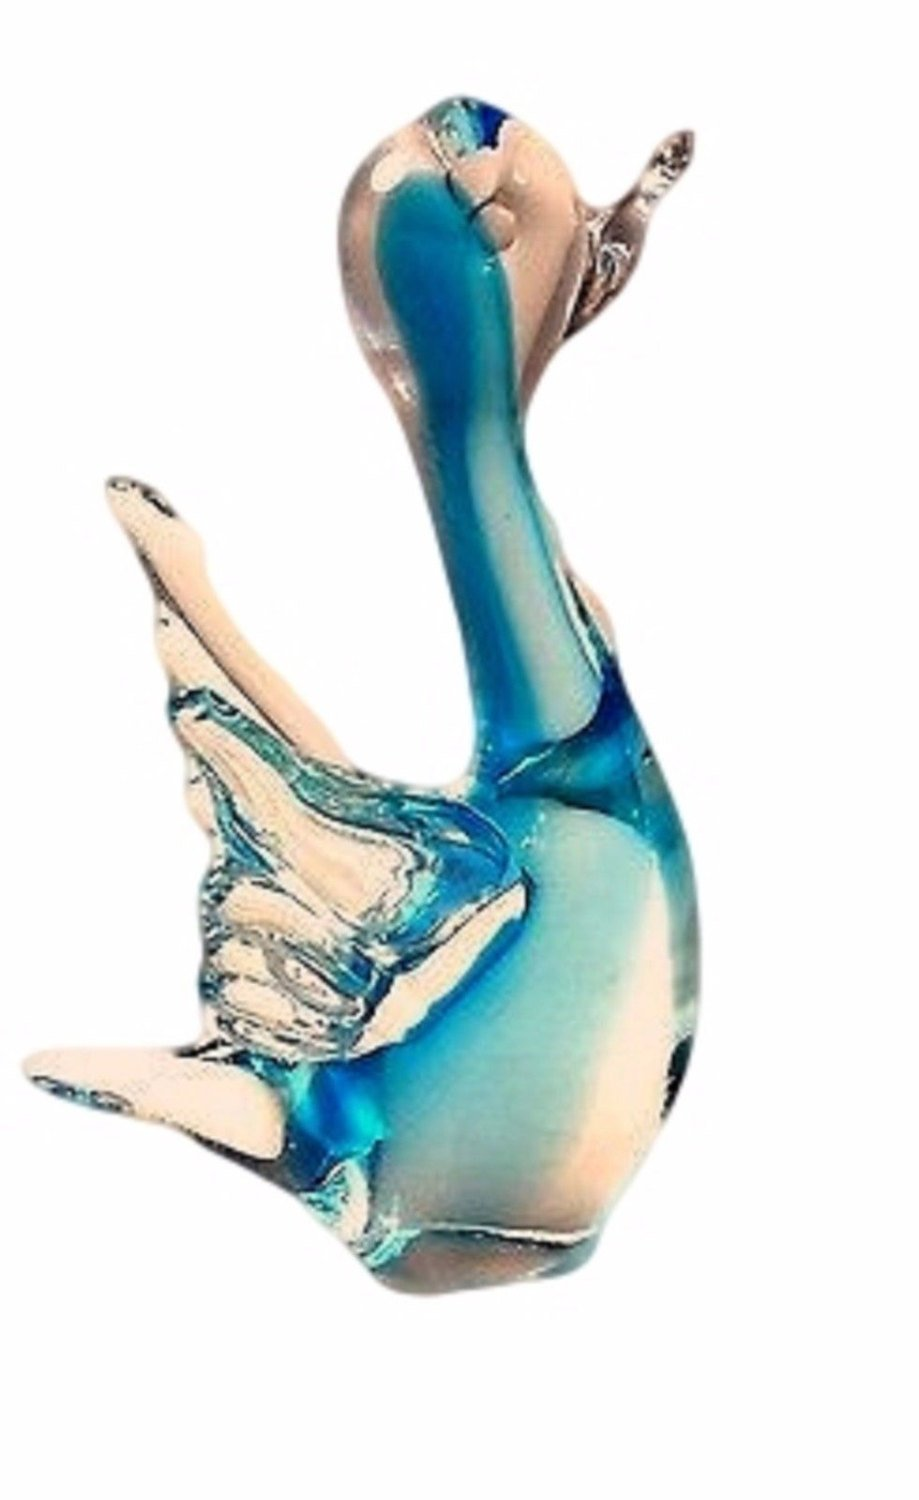 Murano Art Glass Duck Figurine - Tucson Tiques